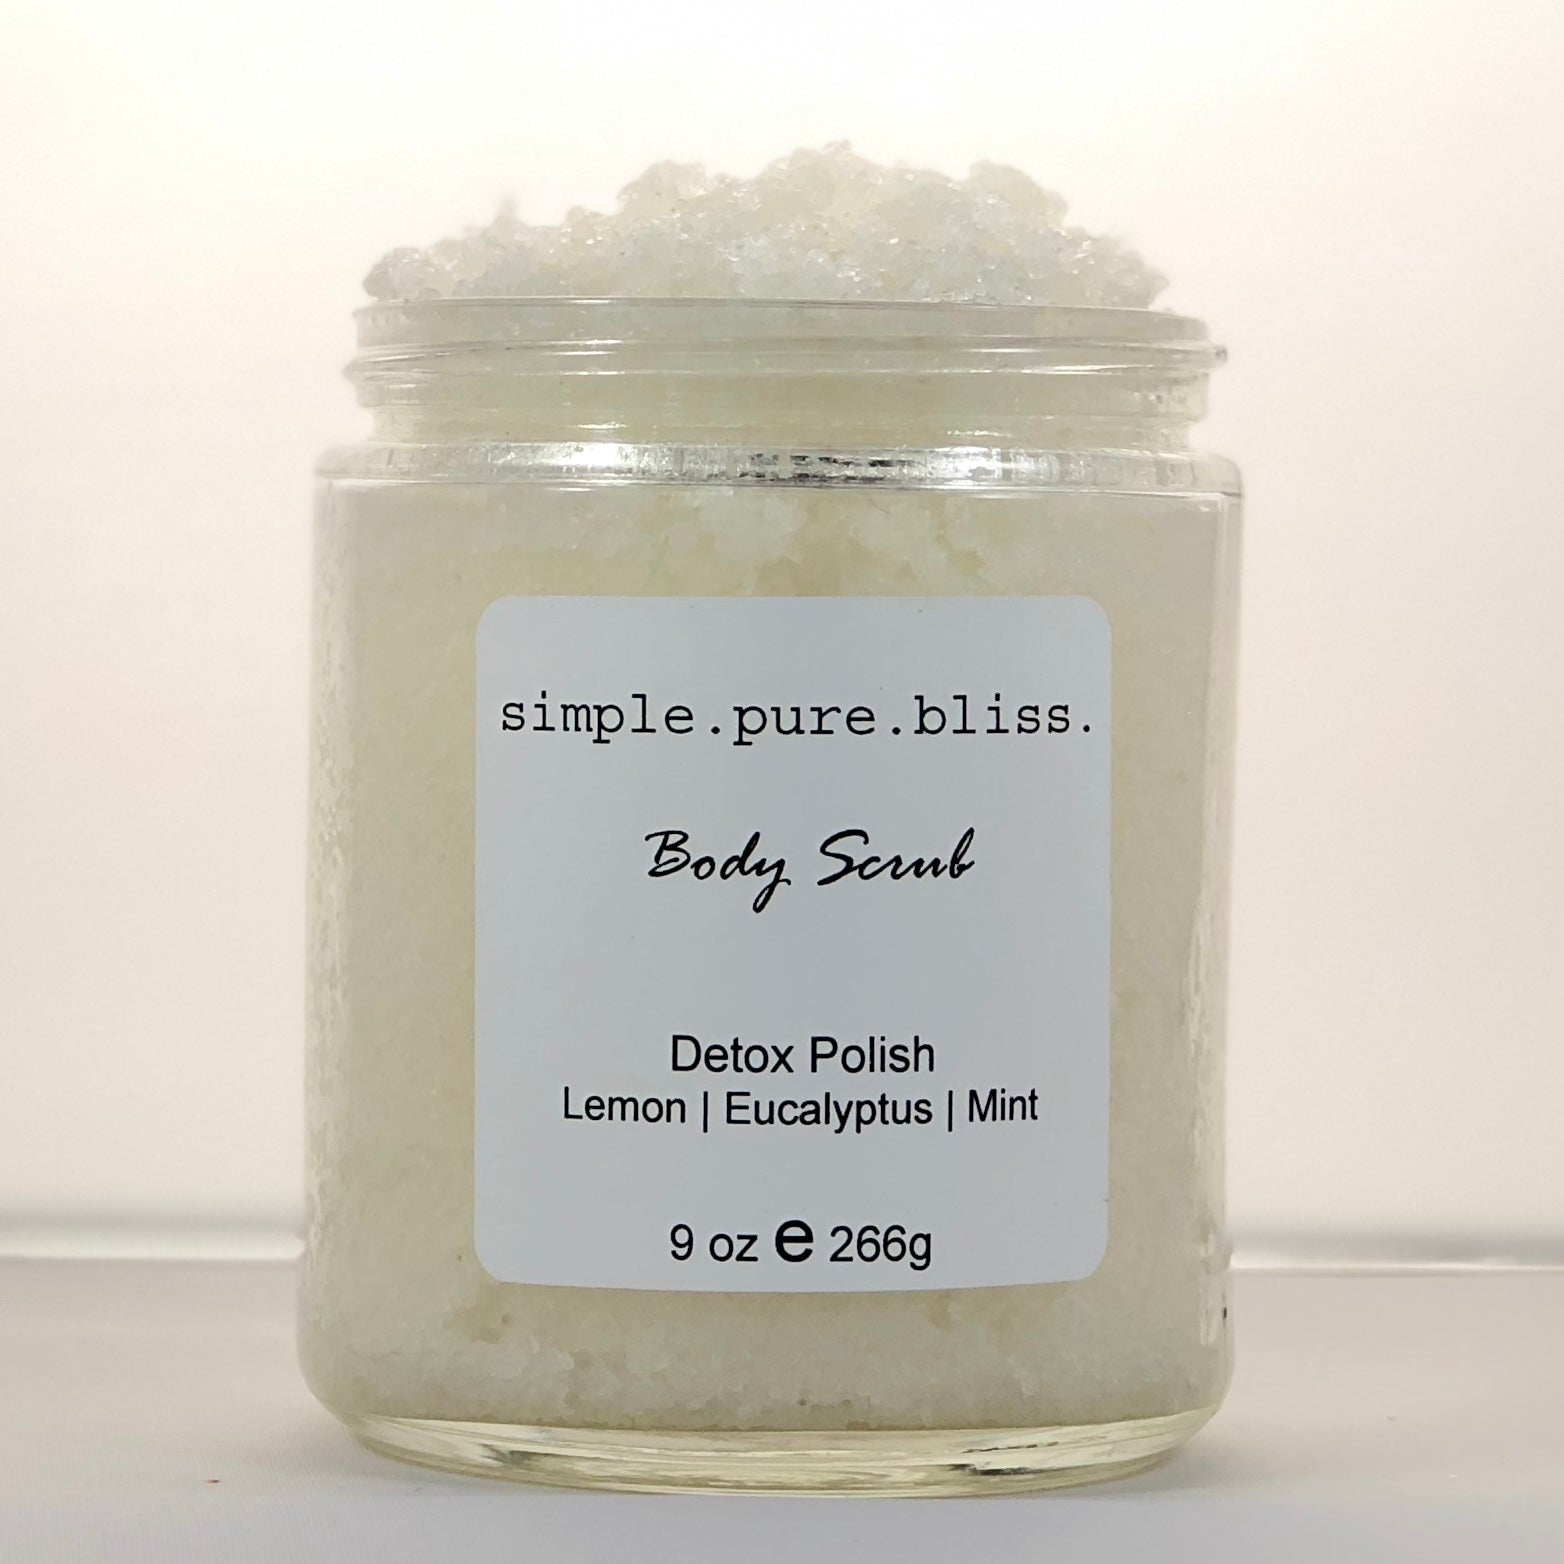 simple. pure. bliss. organic body scrub